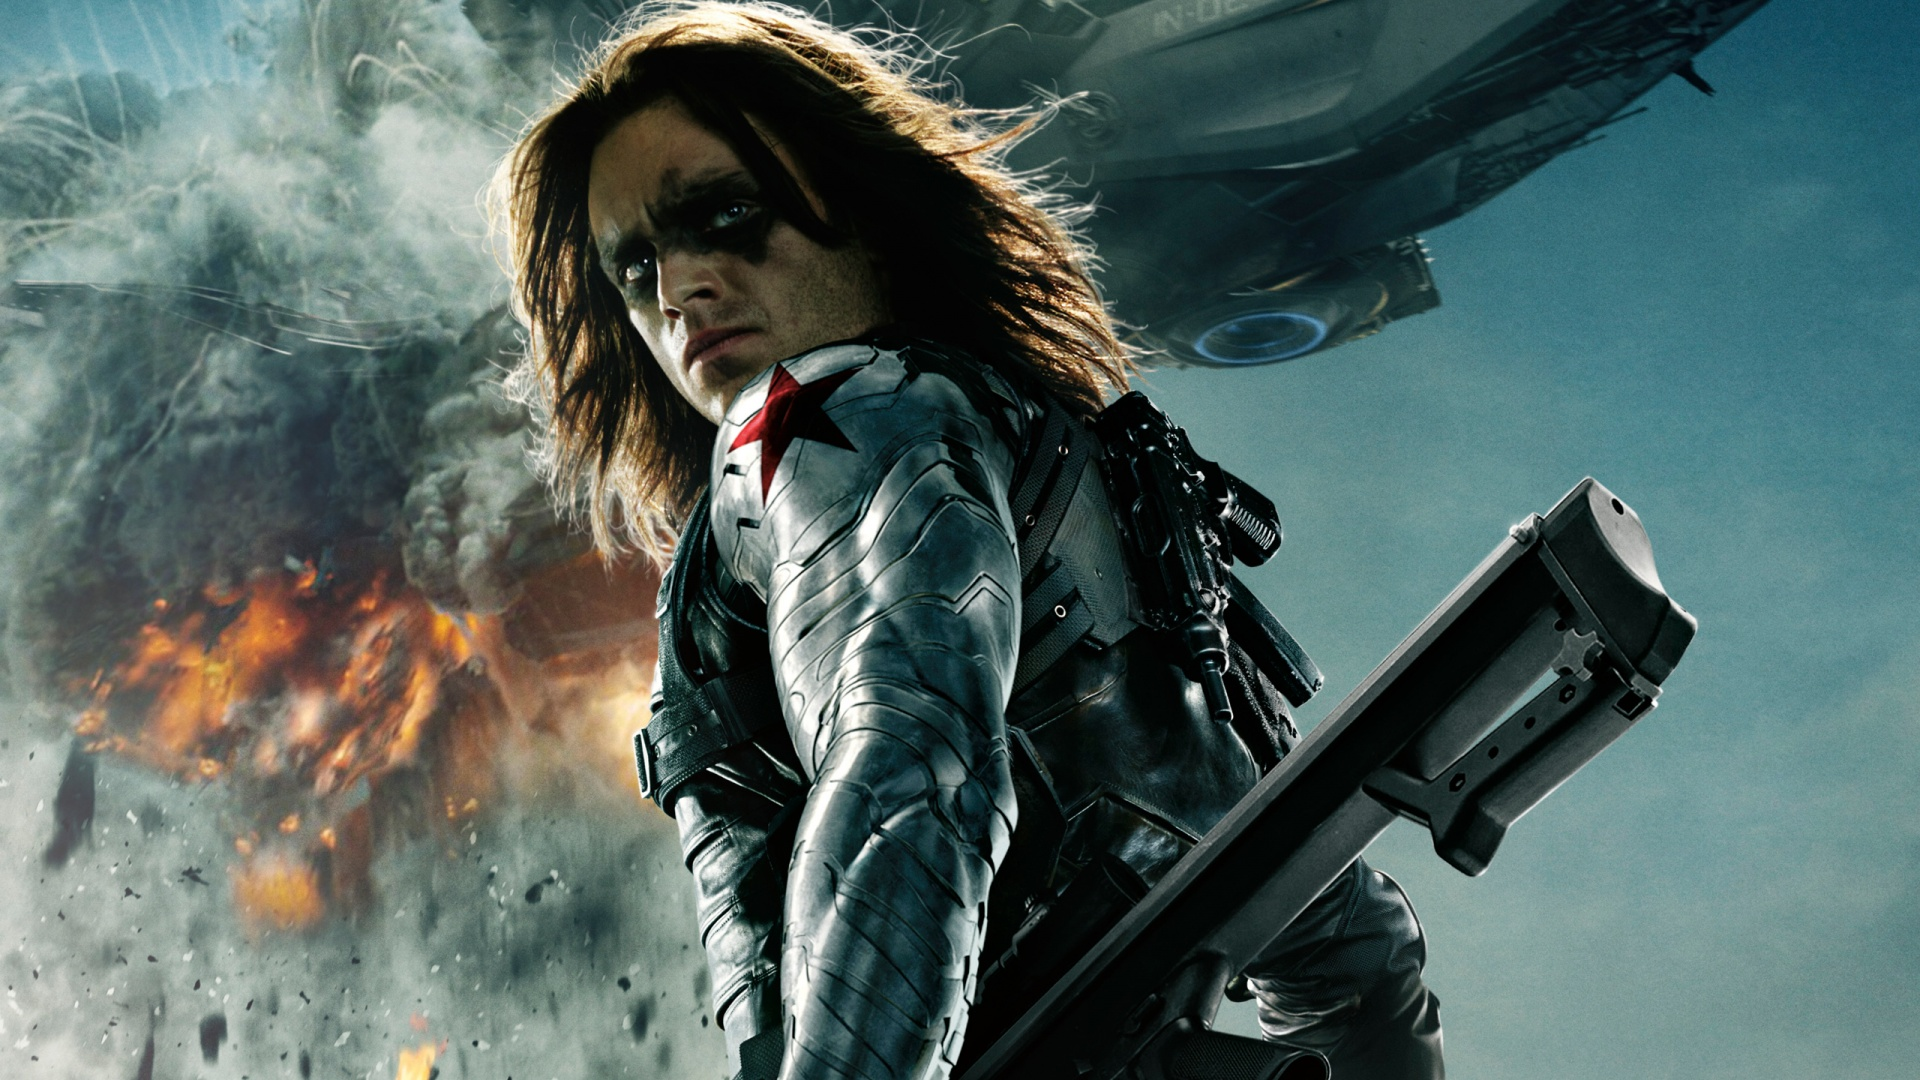 The Winter Soldier Wallpapers HD Wallpapers 1920x1080